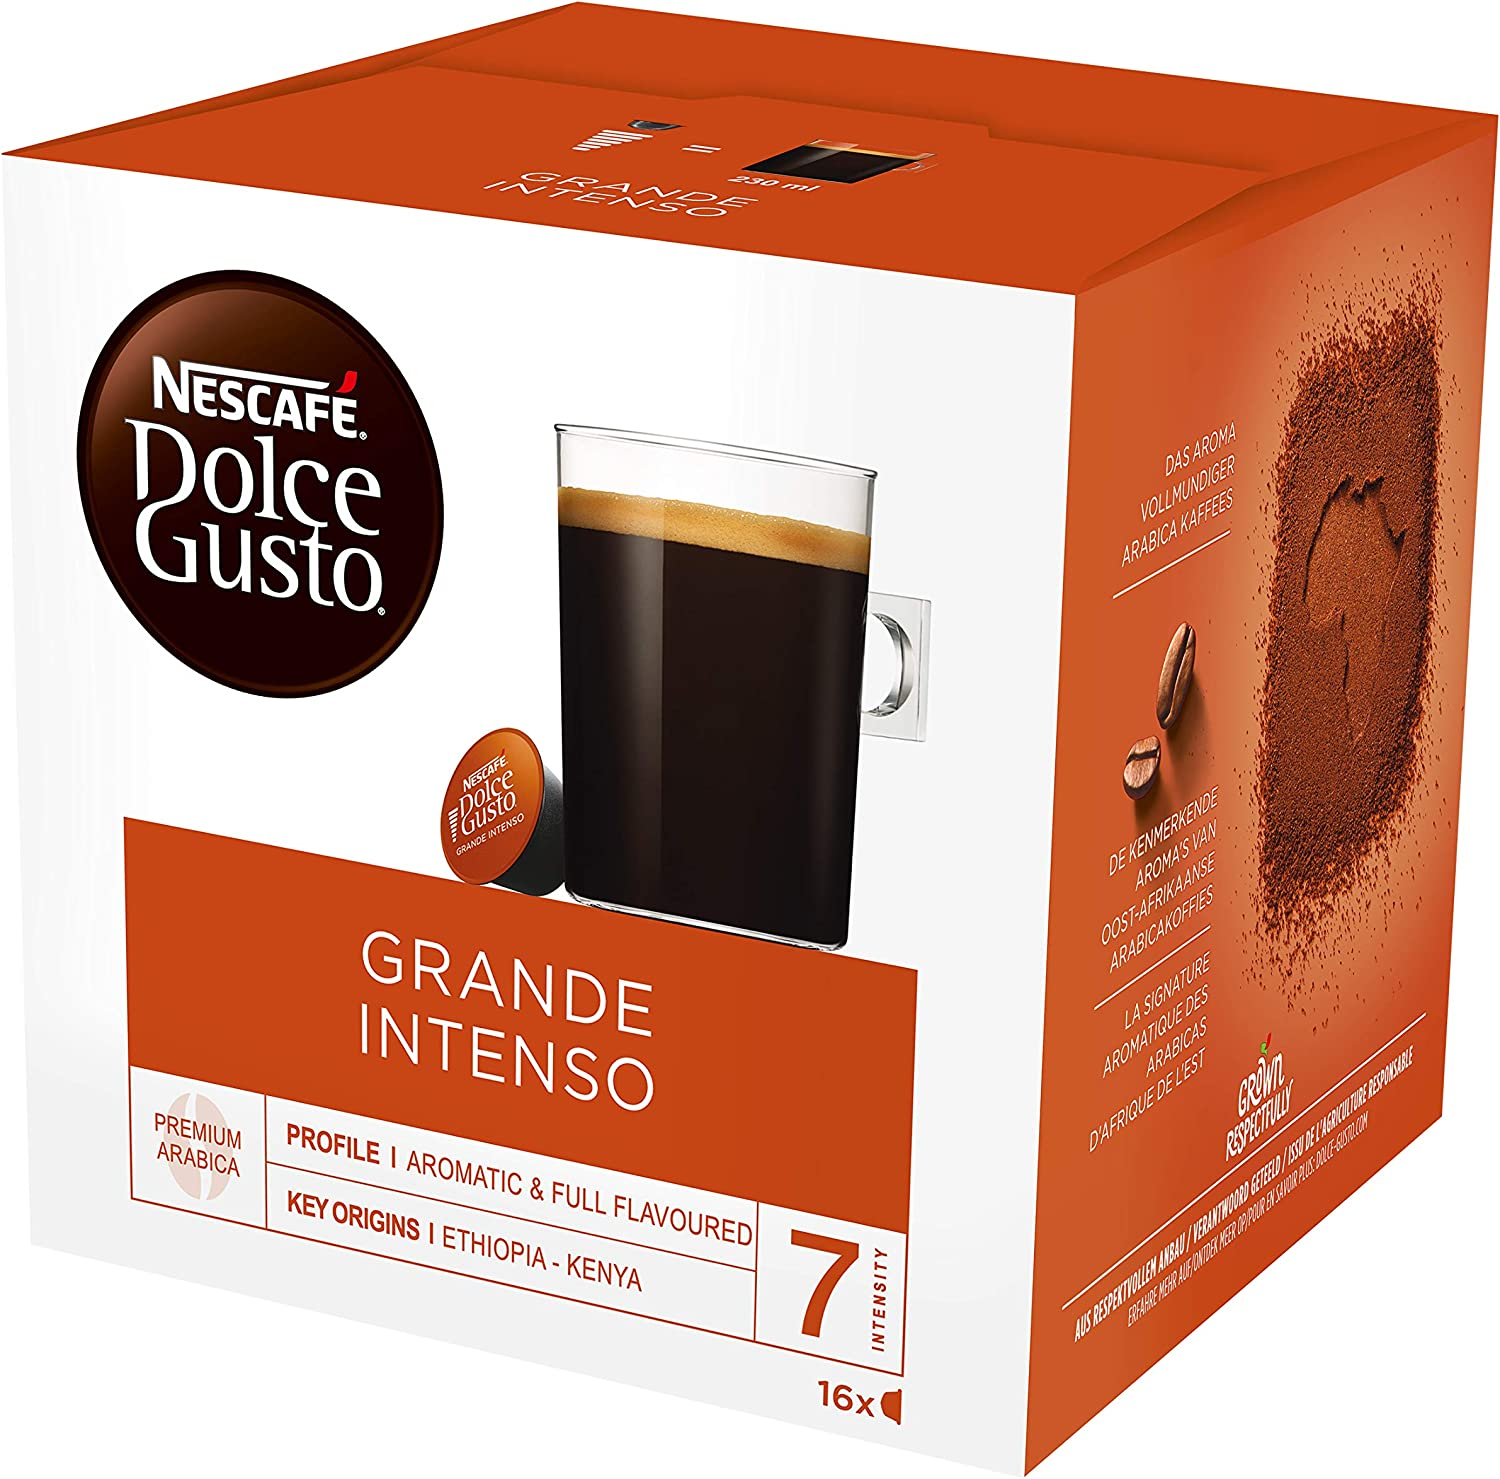 Amazon.com: Nescafe Dolce Gusto Café Grande Intenso: Home ...